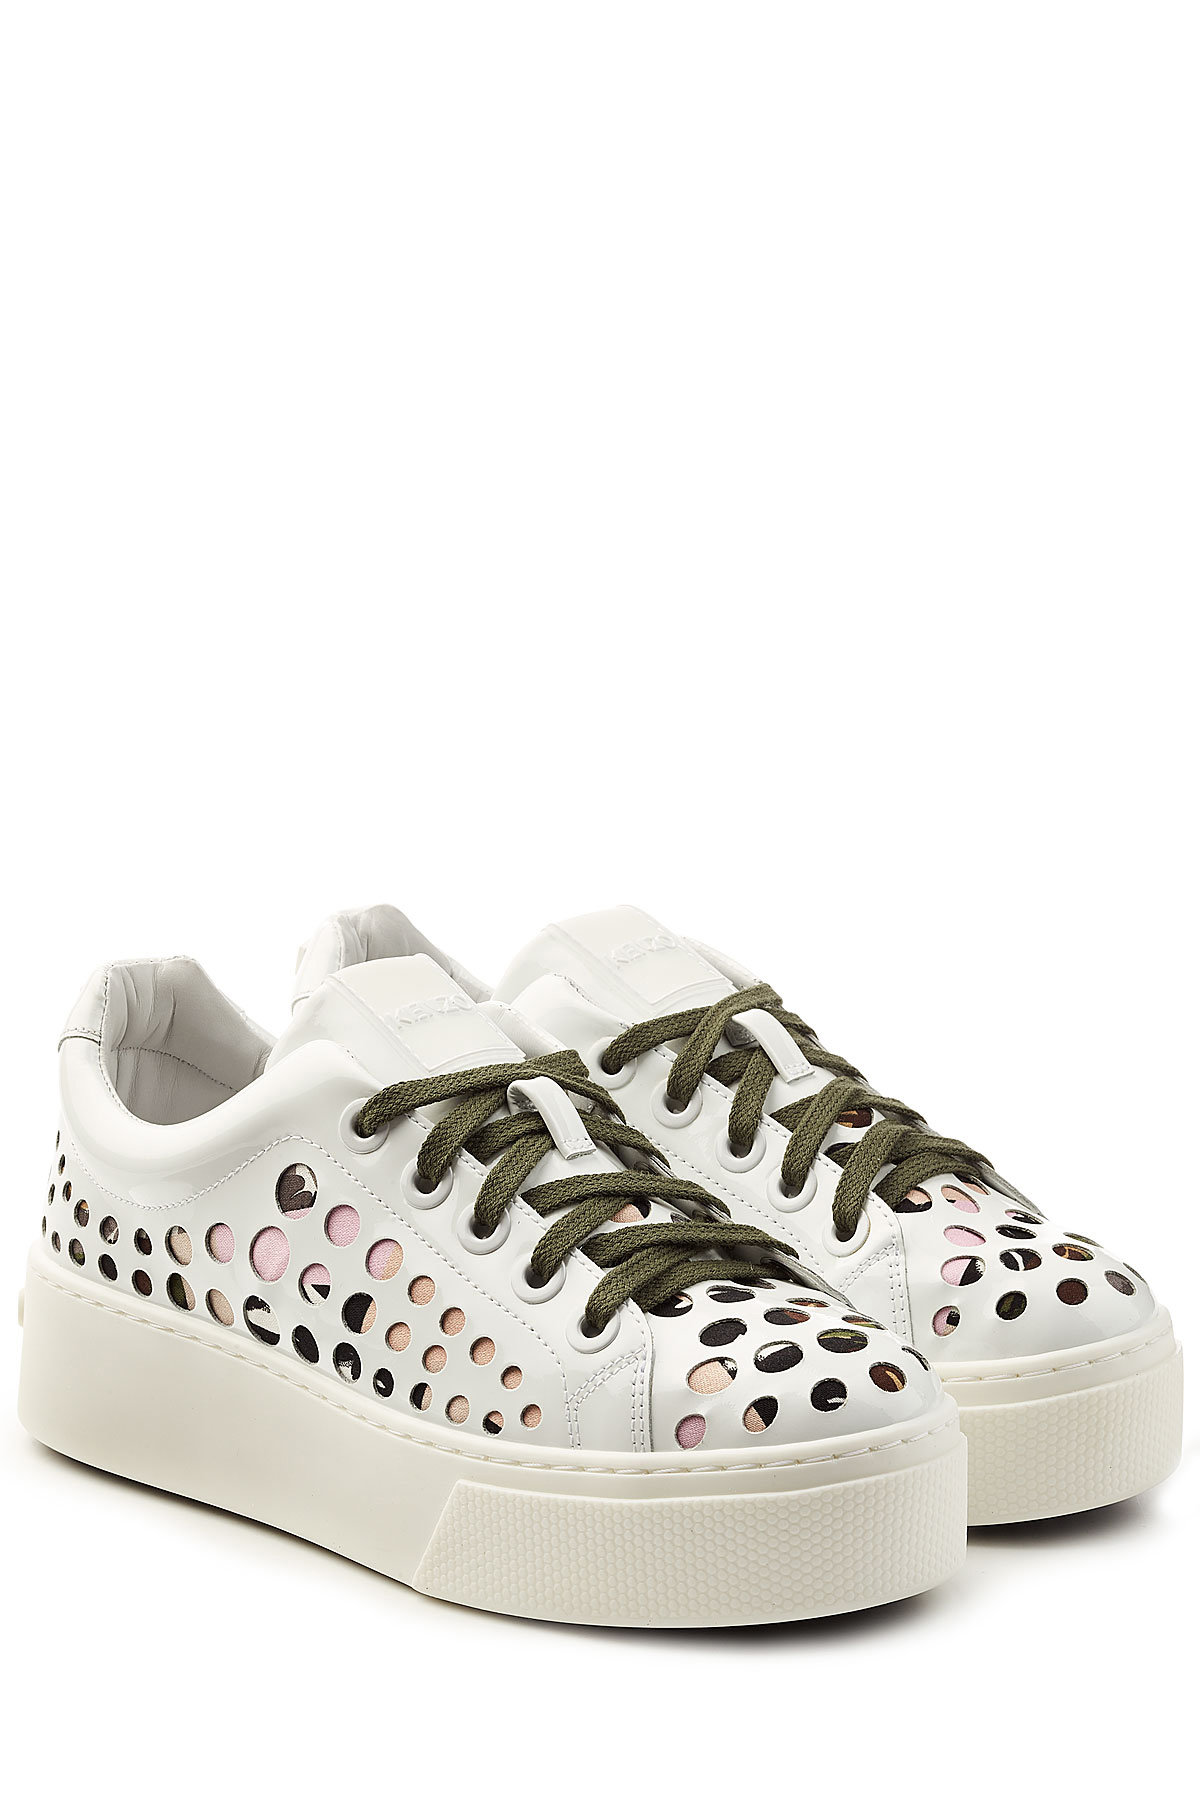 Marc Jacobs Canvas Sneakers with Patches and Embellishments Gr. IT 35 IKh0jFGb